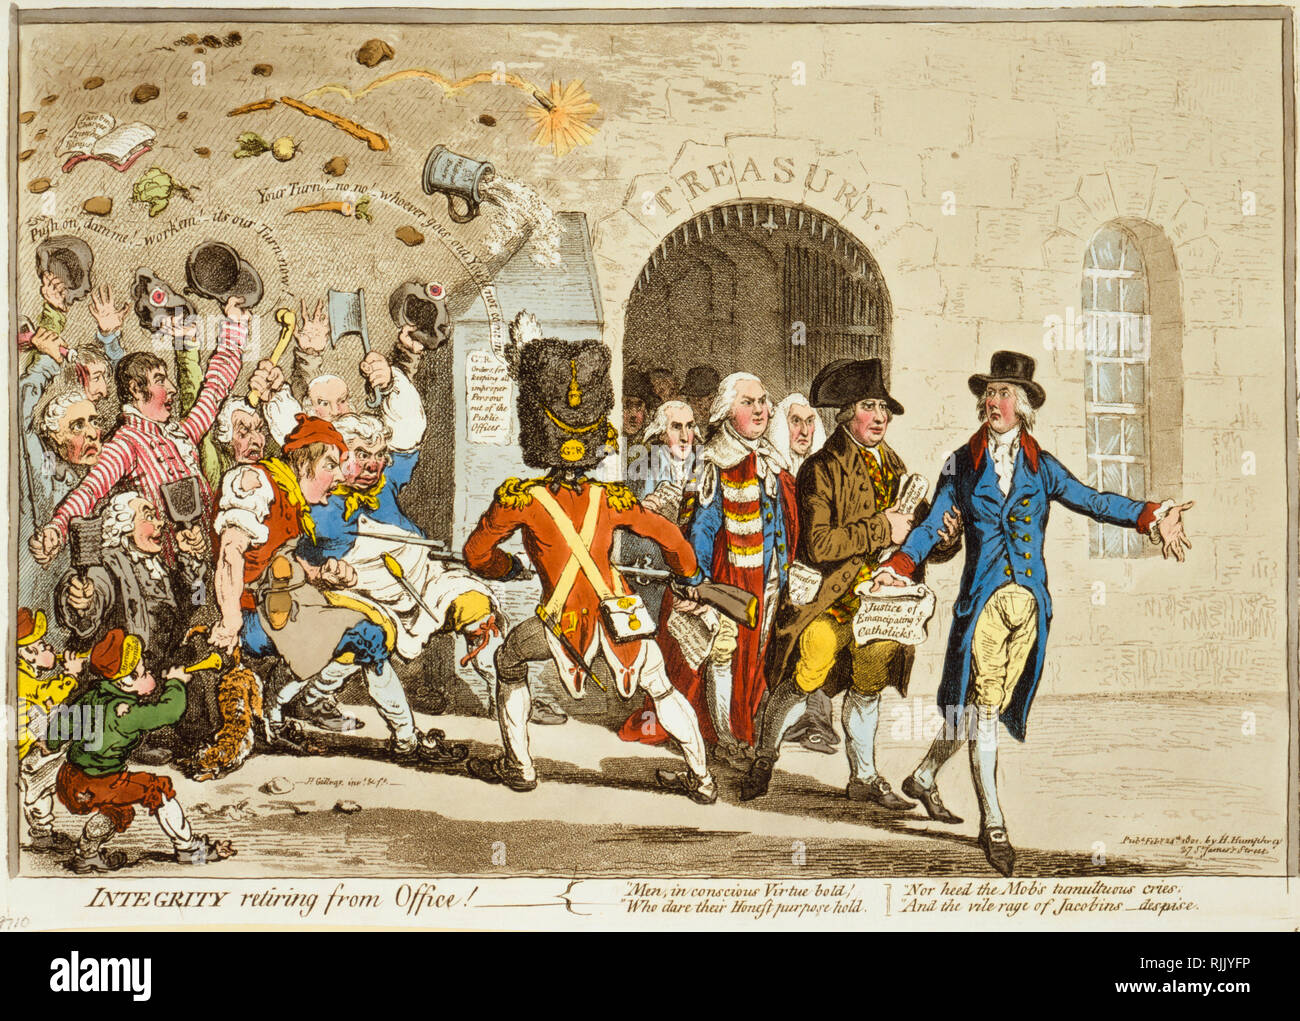 British Political Cartoon - James Gillray 1801 - 'Integrity retiring from Office' - politics - Stock Image